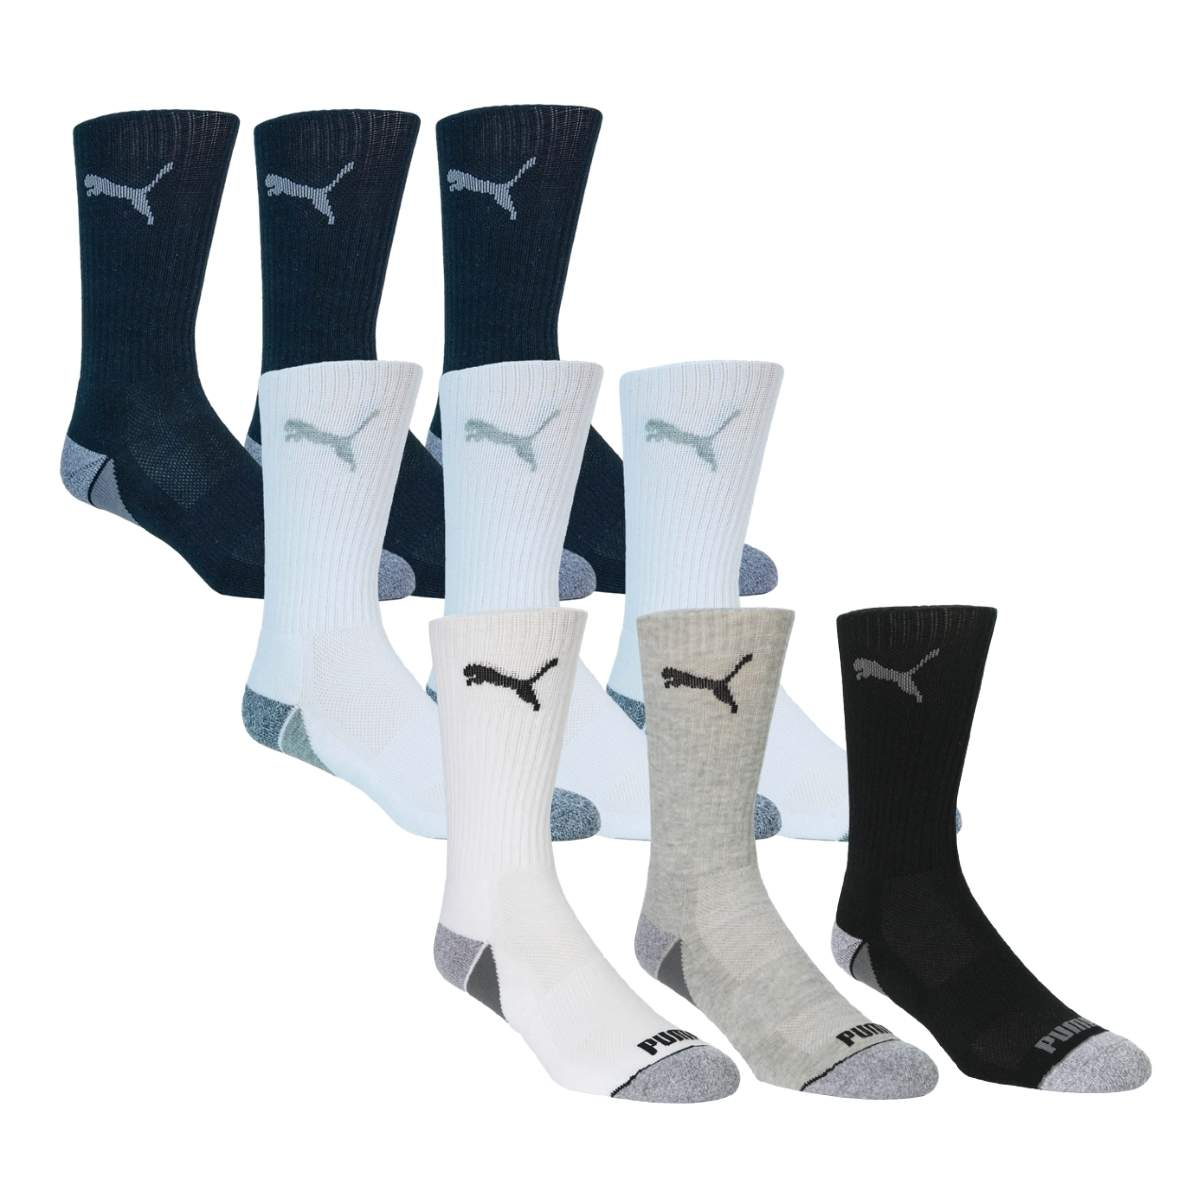 Puma Men's Pounce Crew 3 Pack Socks